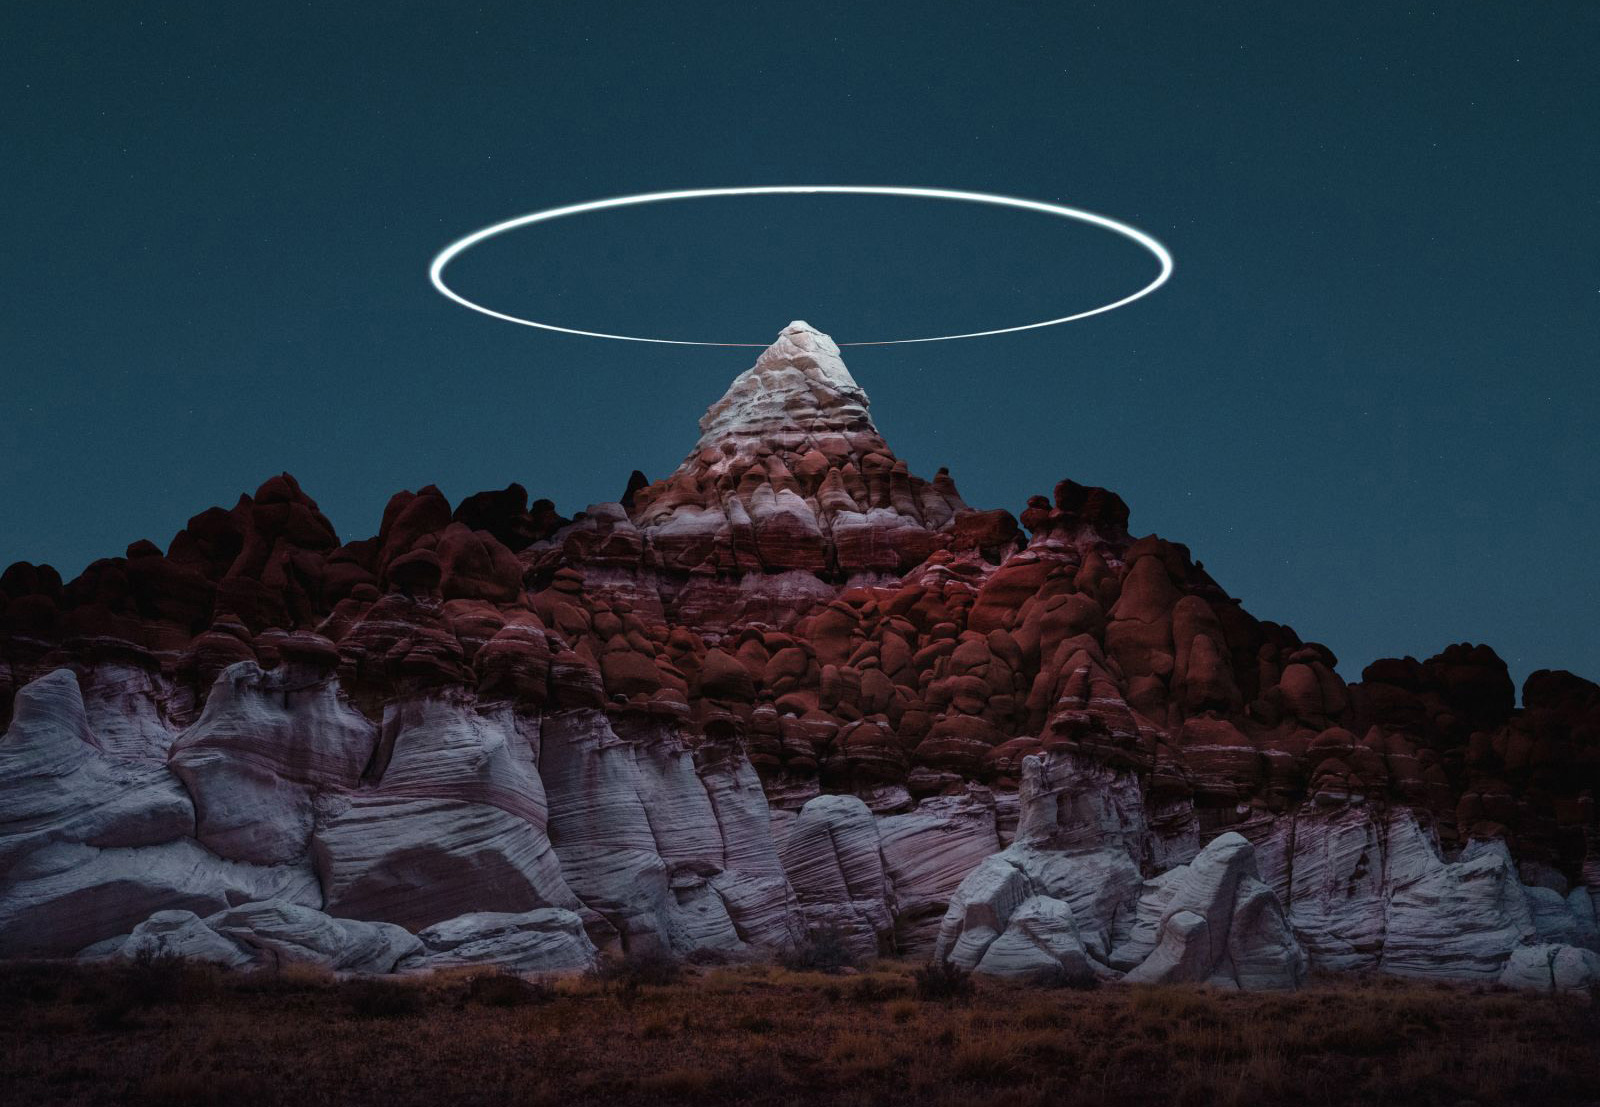 Drones add eerie halos to landscape photos in 'Lux Noctis'